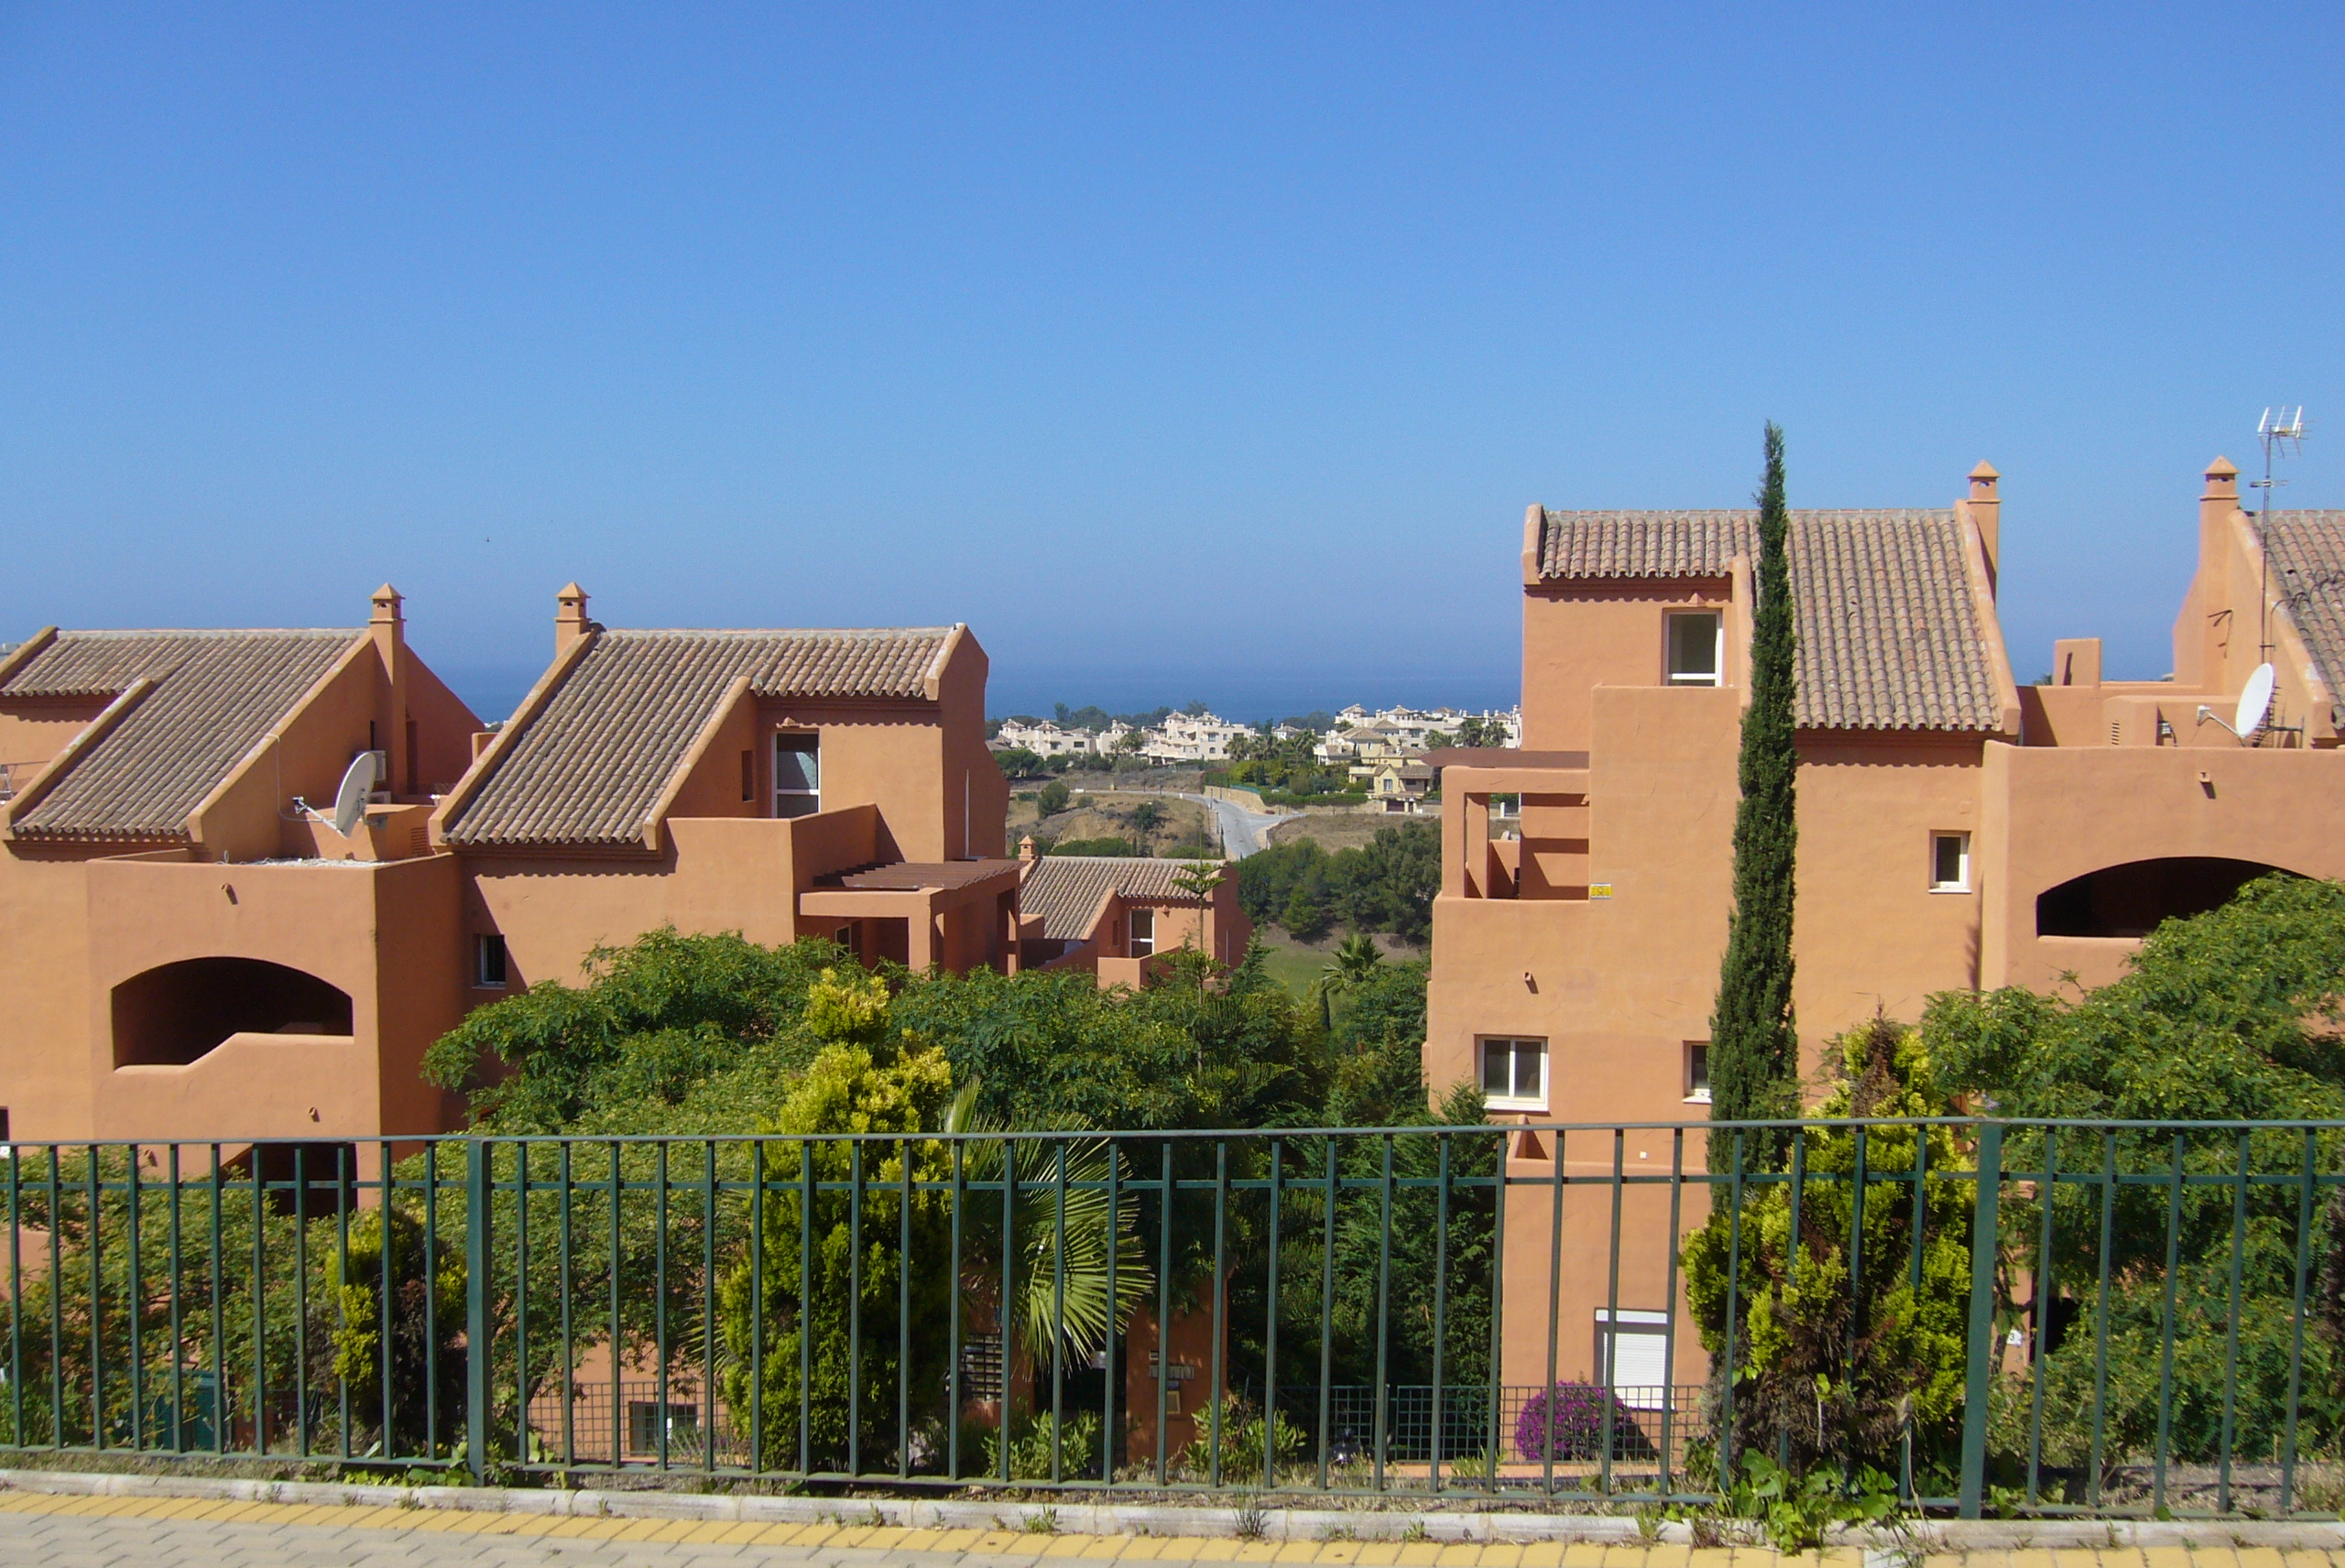 3 BEDROOM APARTMENT IN MARBELLA